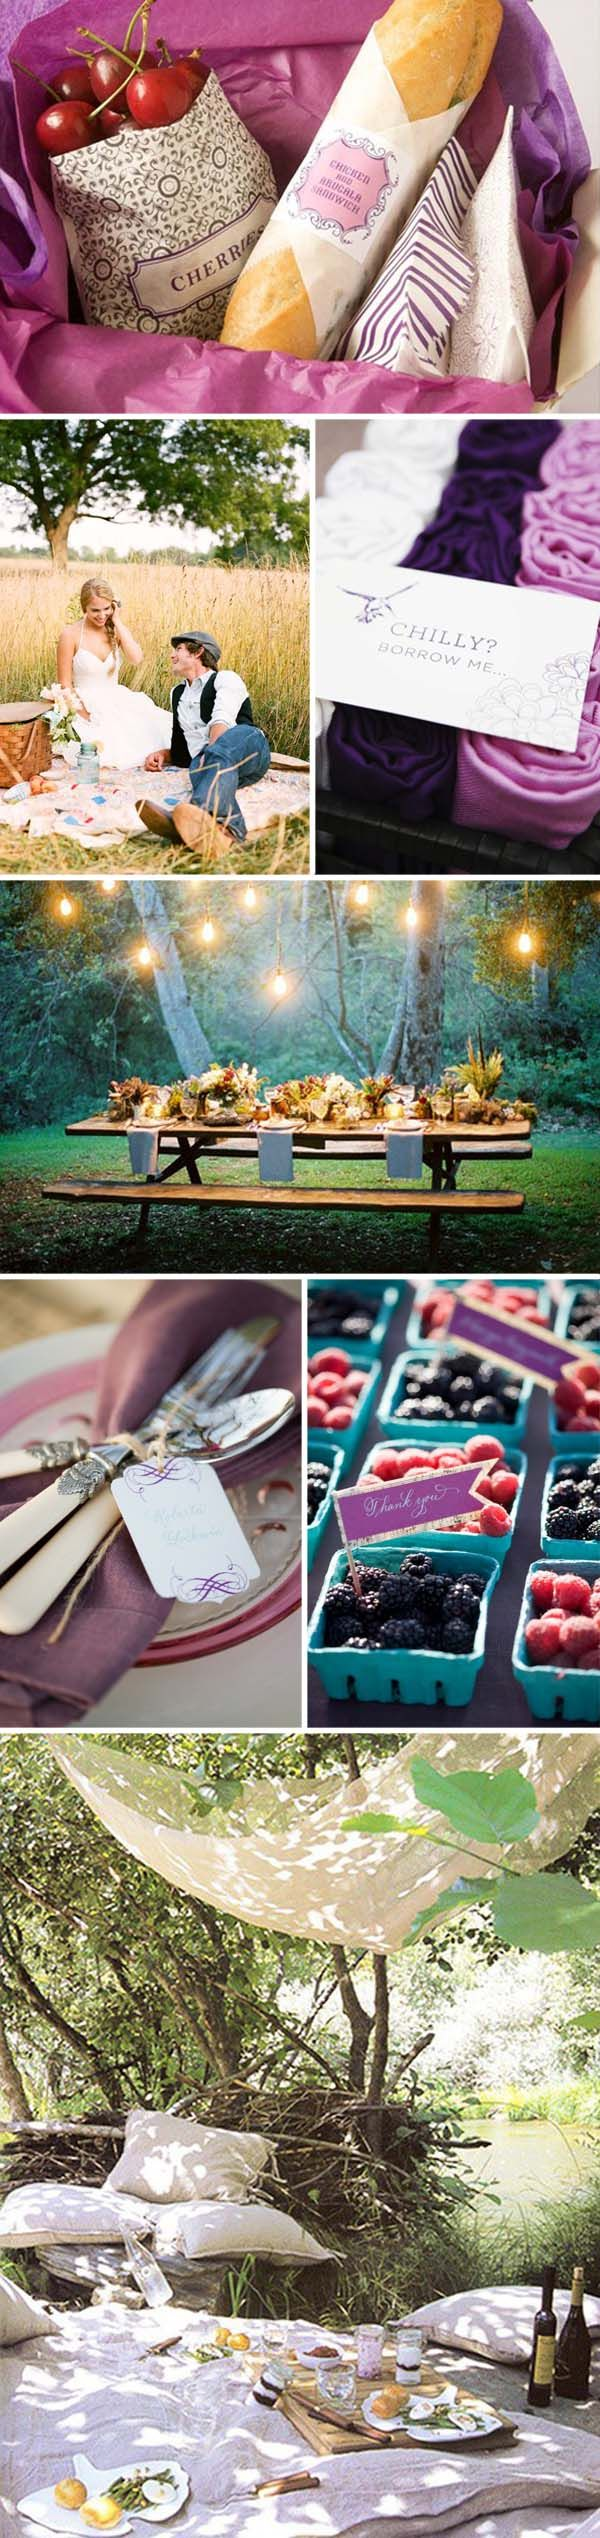 "DIY: Picnic Wedding; I like the label for the shawls in the basket that says ""Chili? Borrow me""."